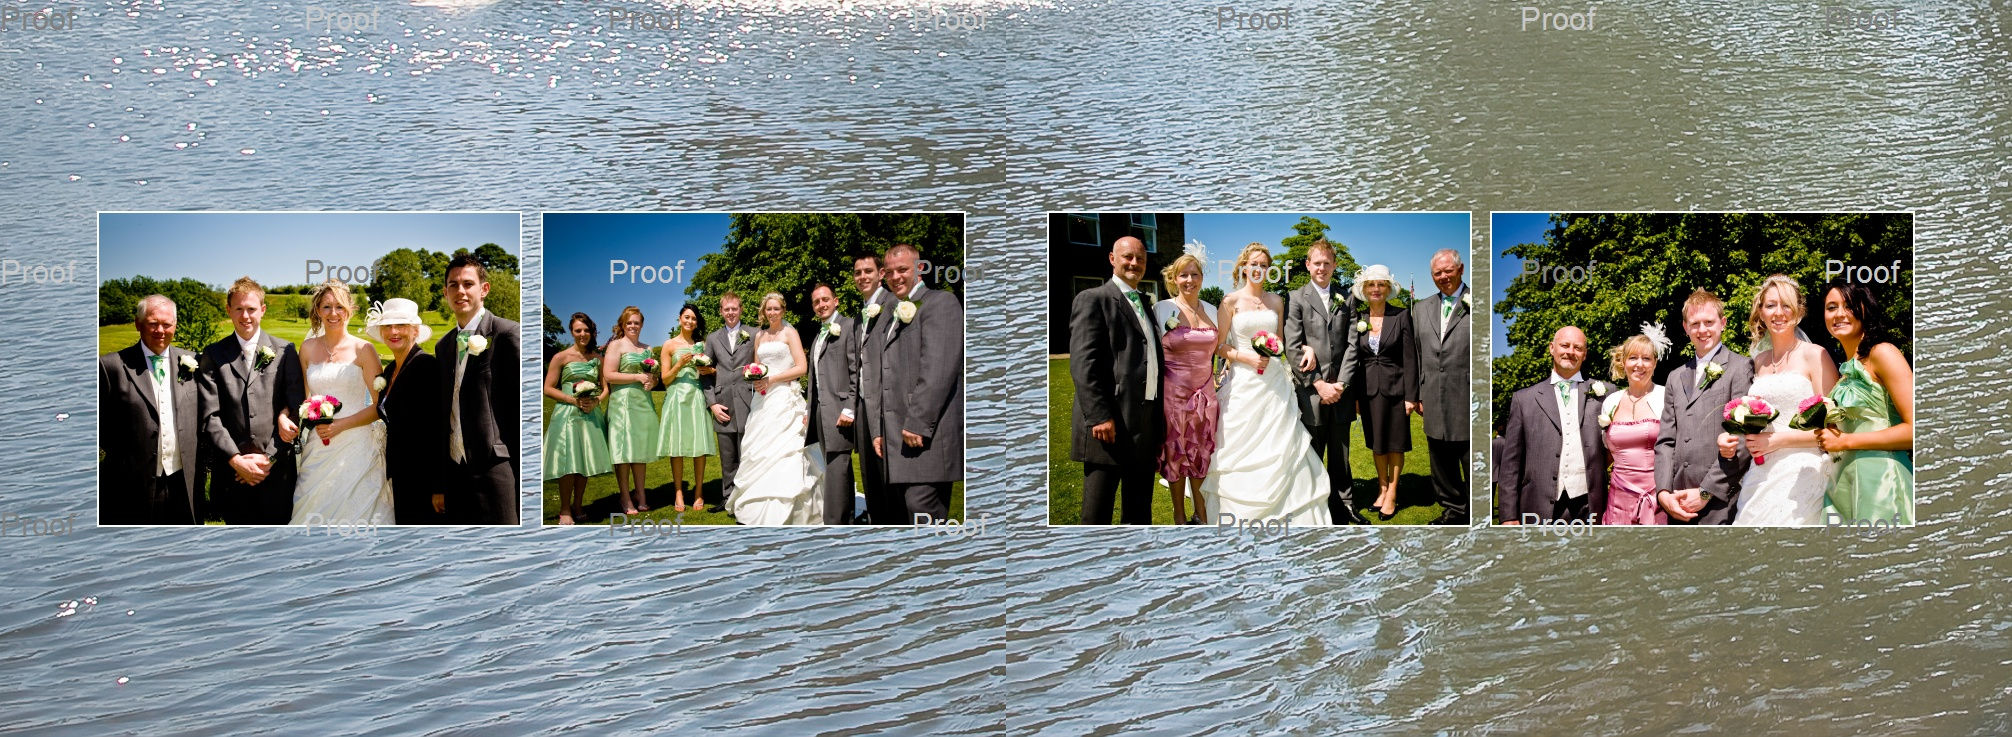 posed family wedding photos against backdrop of the lake surrounding the island at Waterton Park Hotel